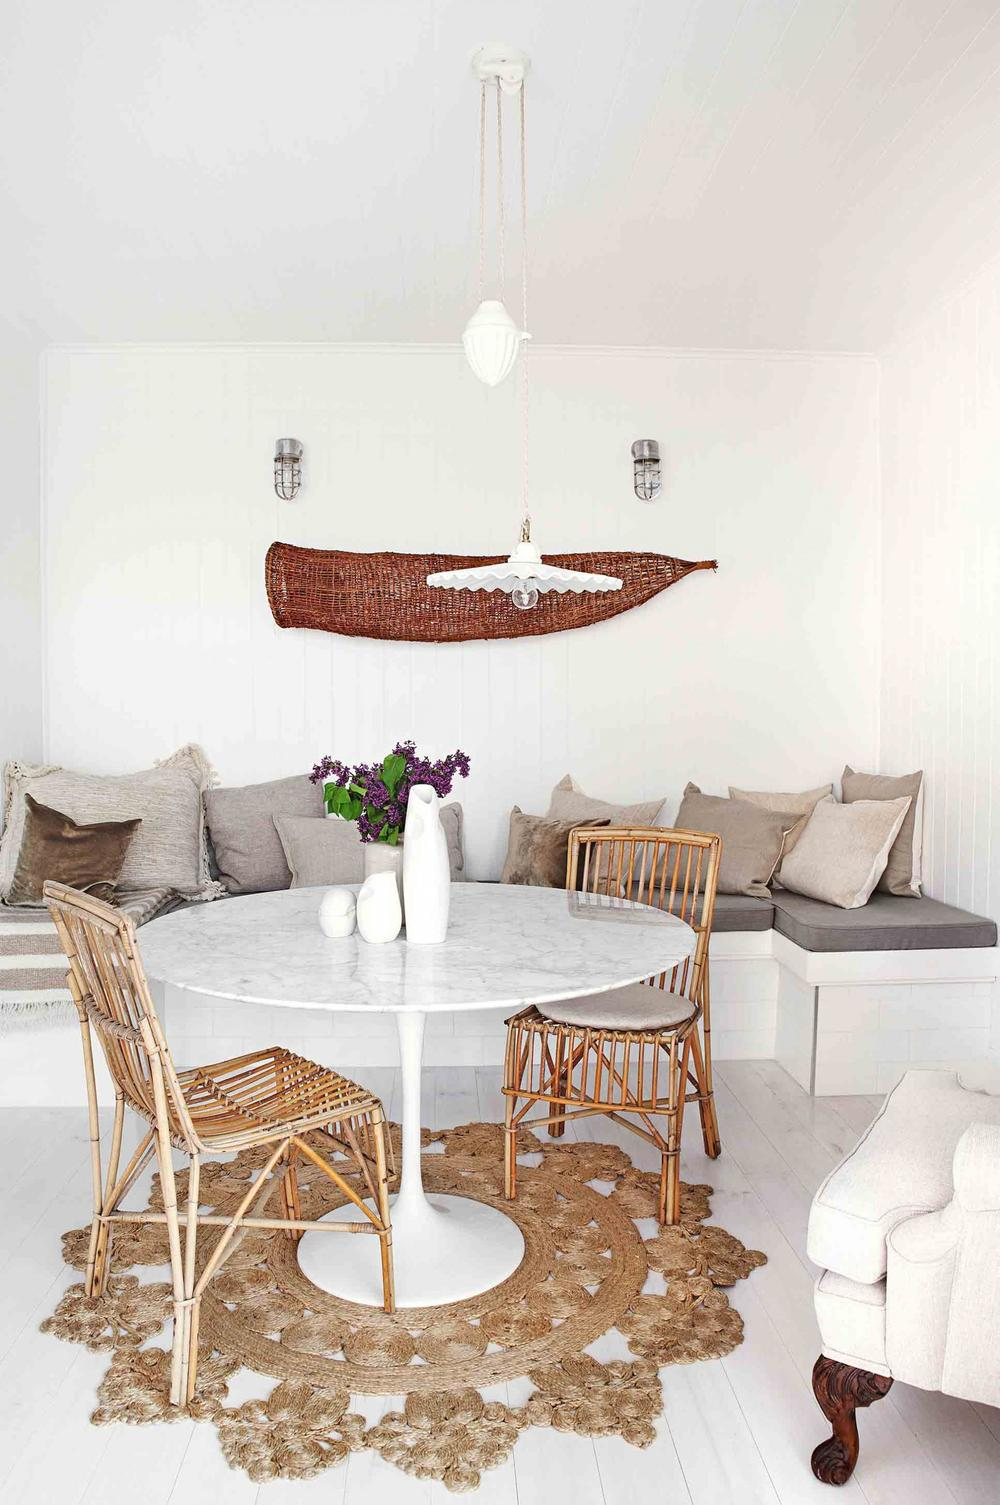 _white-living-room-rattan-furniture-bench-seat-jute-cushions-rug-20150320123334-q75,dx1920y-u1r1g0,c--.jpg